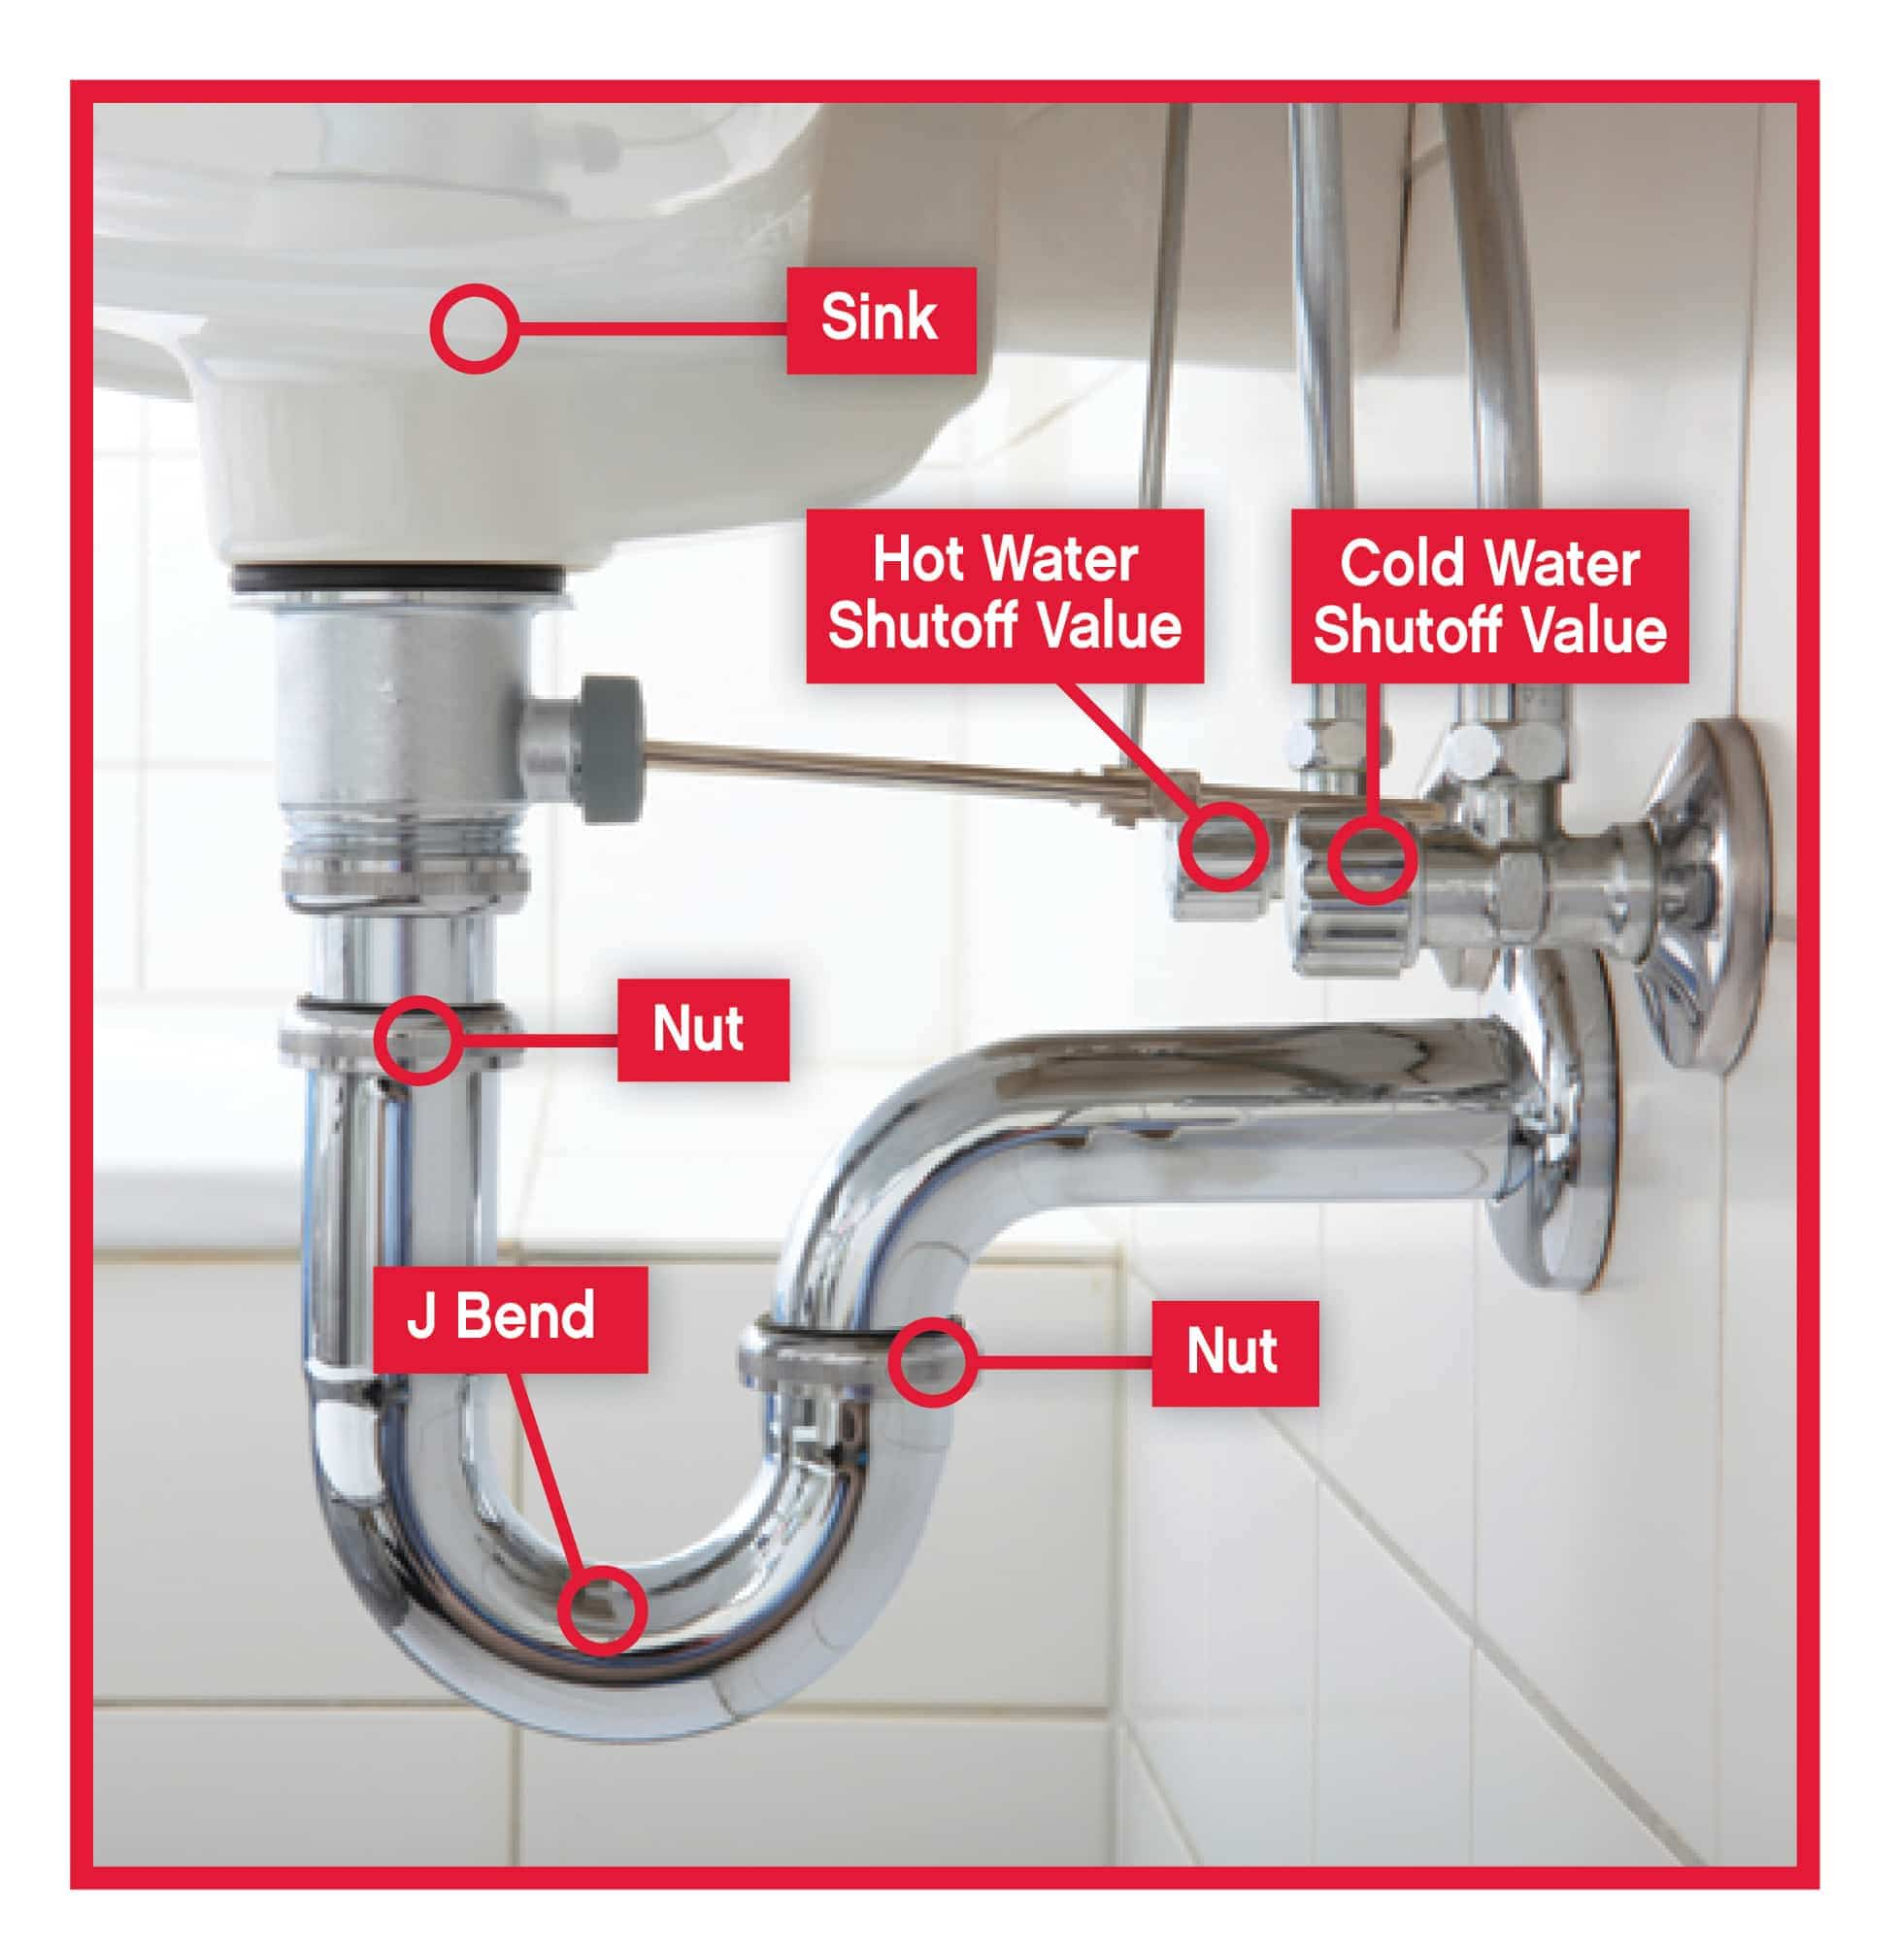 residential water softener hook up diagram furnas drum switch wiring typical shower plumbing schematic get free image